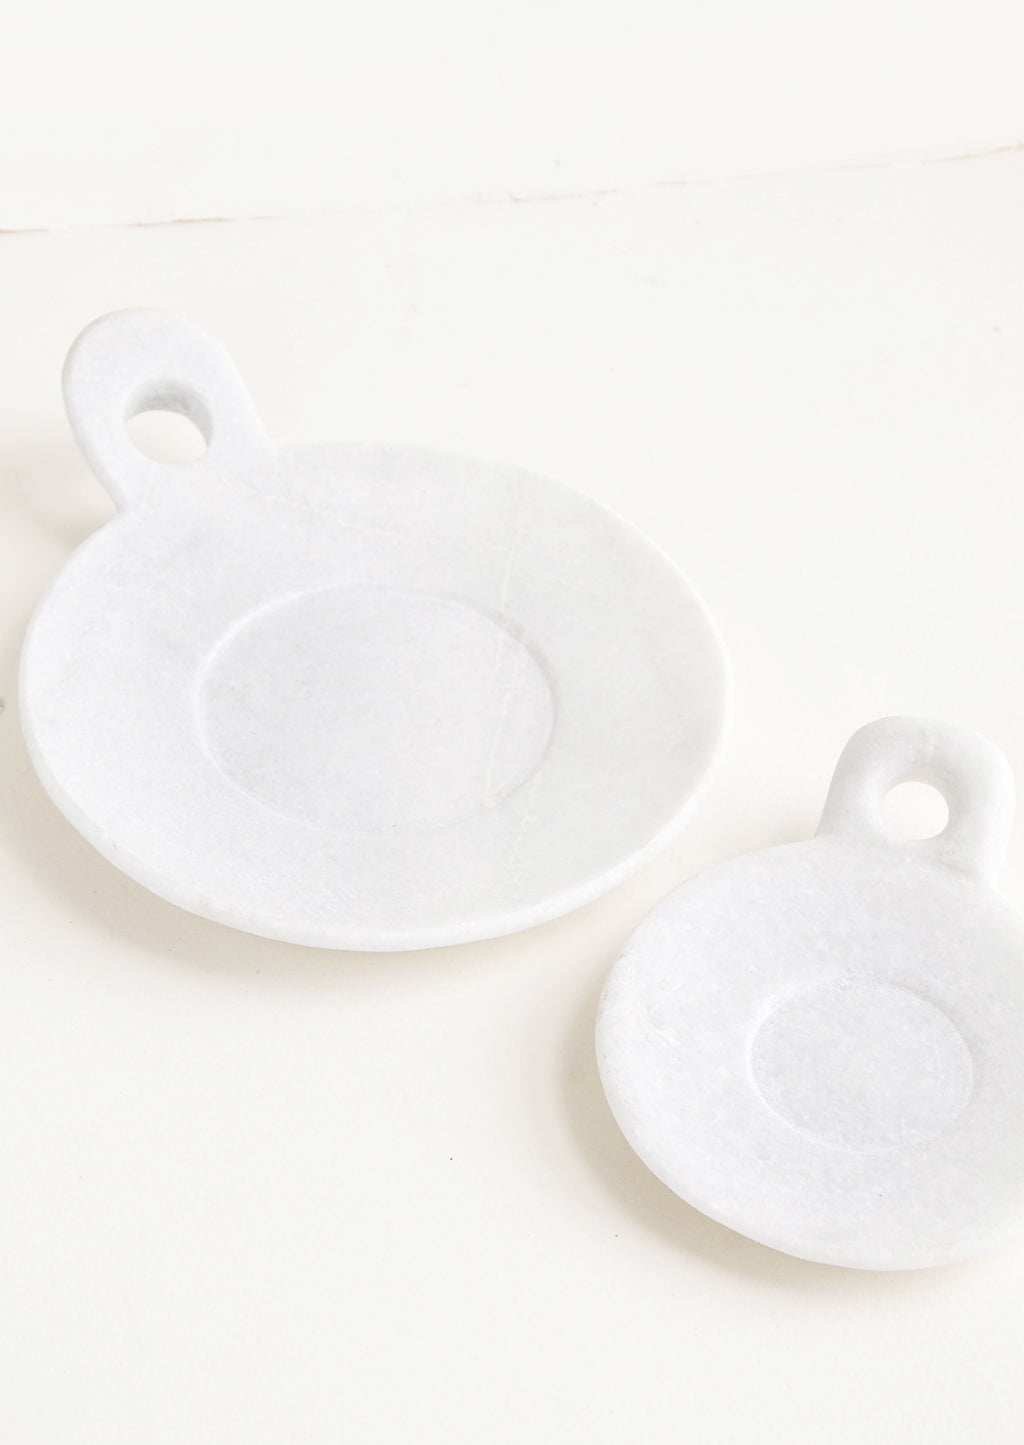 2: Round marble dishes with circular cutout side handle and circular inset at center